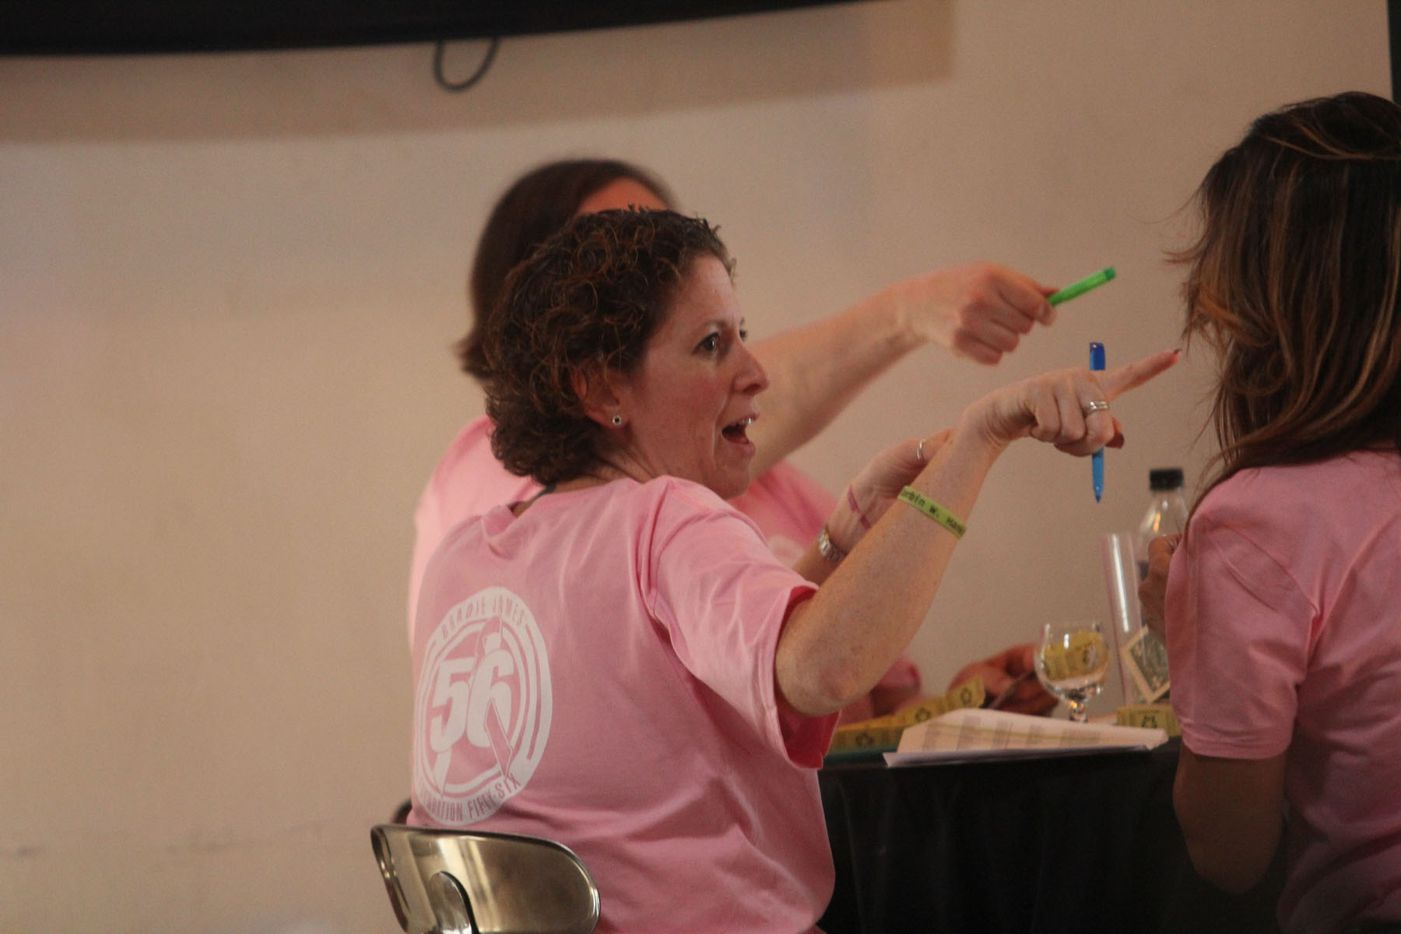 Noble Rey Brewing Co. was one of the stops during the inaugural Brew Crawl for Breast Cancer on Saturday in Dallas. The event was put on by Dallas Brew Scene, with all proceeds benefiting former Dallas Cowboys Bradie James' Foundation 56 breast cancer nonprofit.